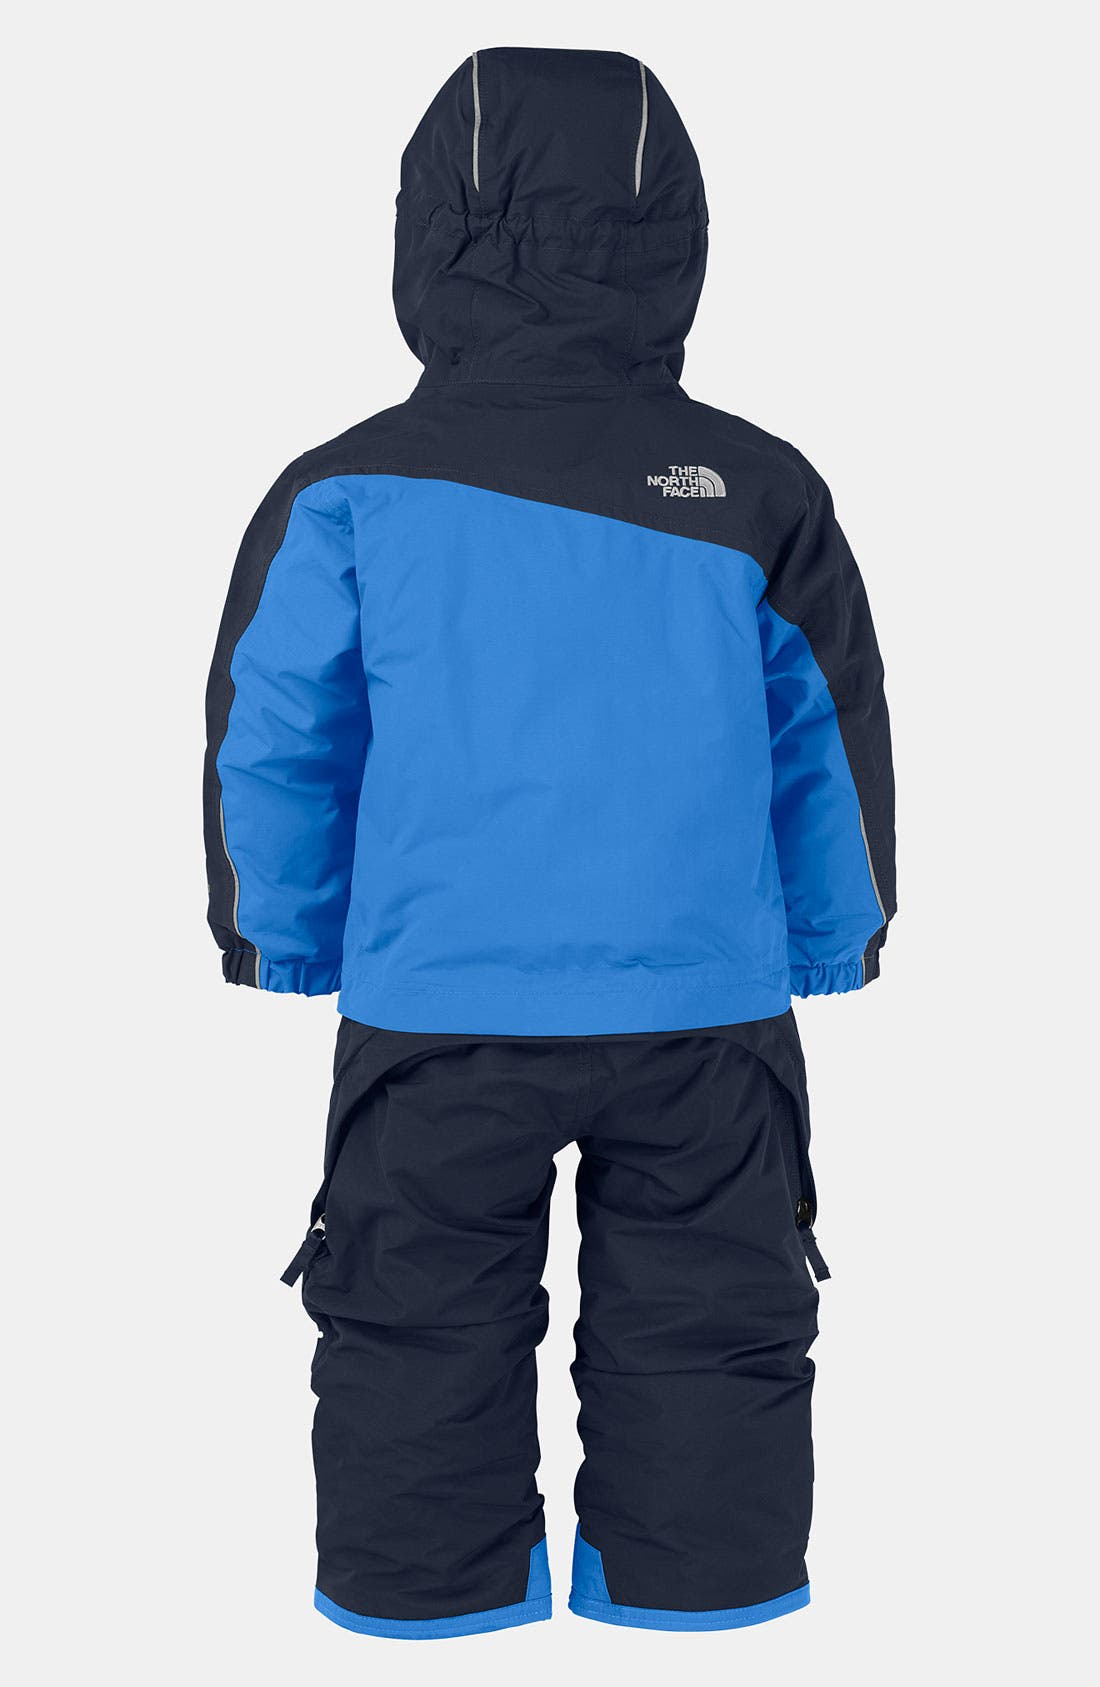 Insulated Snow Suit,                             Alternate thumbnail 2, color,                             400